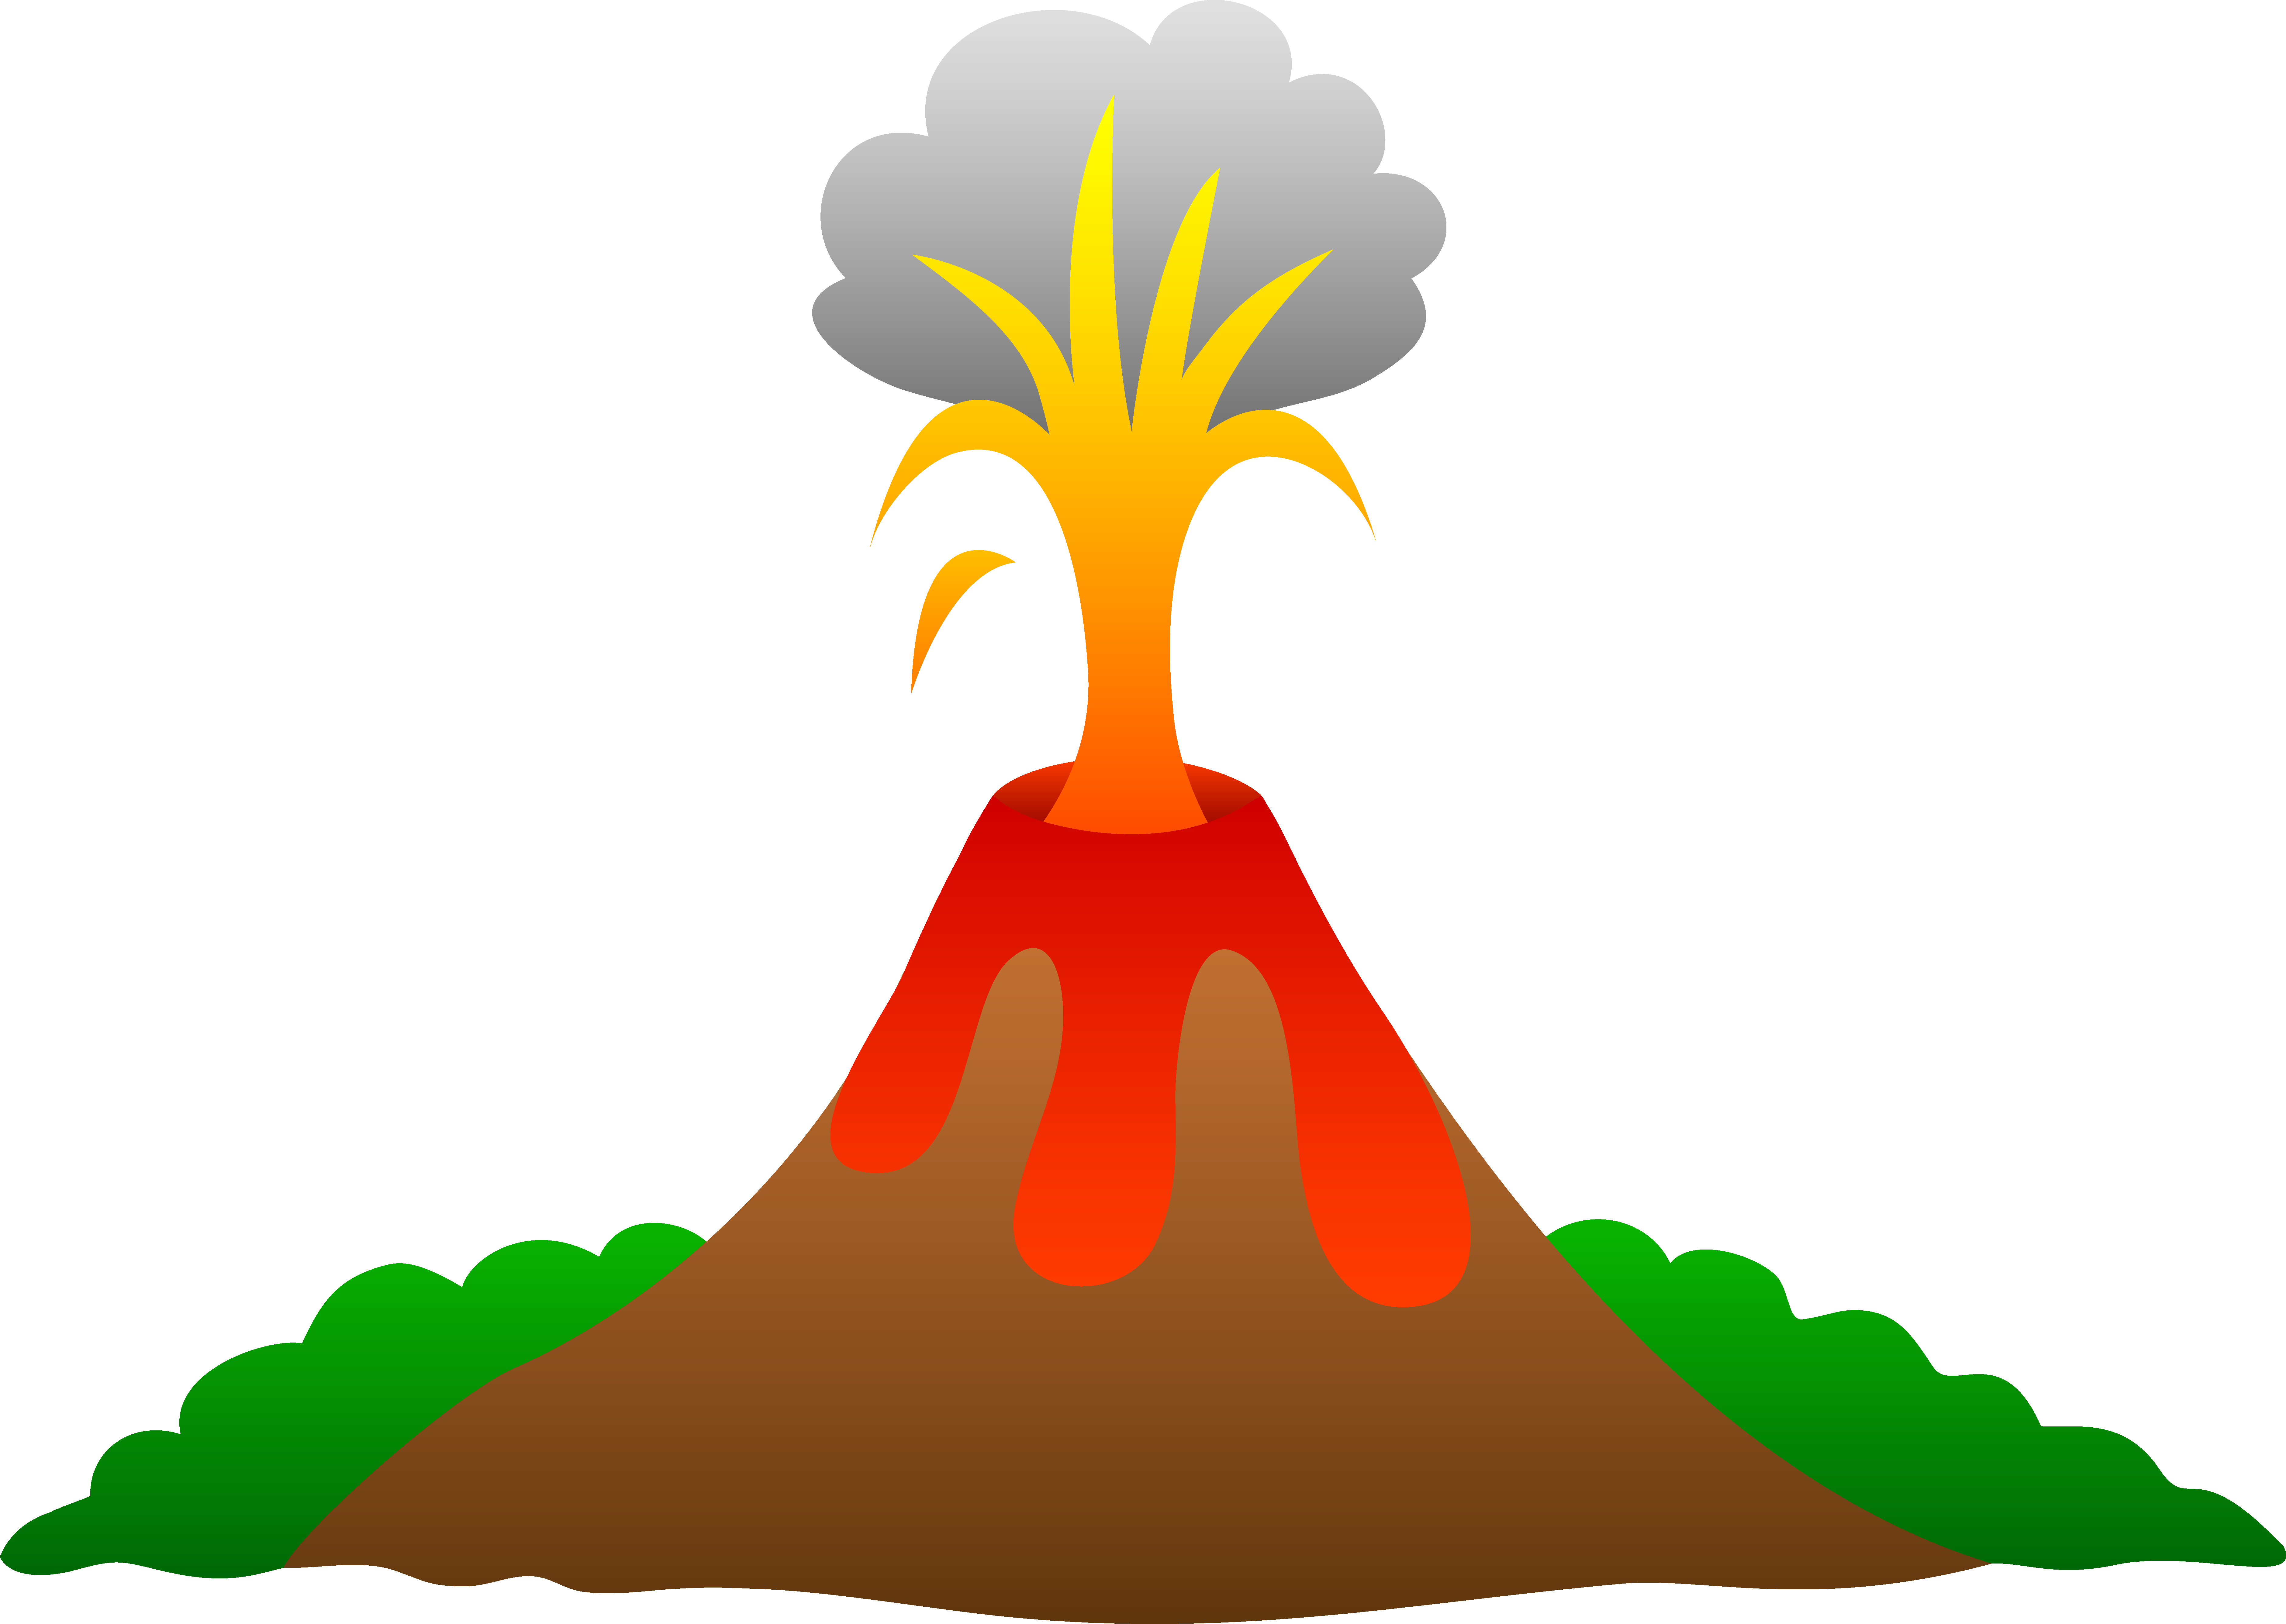 Disasters on emaze top. Geology clipart natural disaster